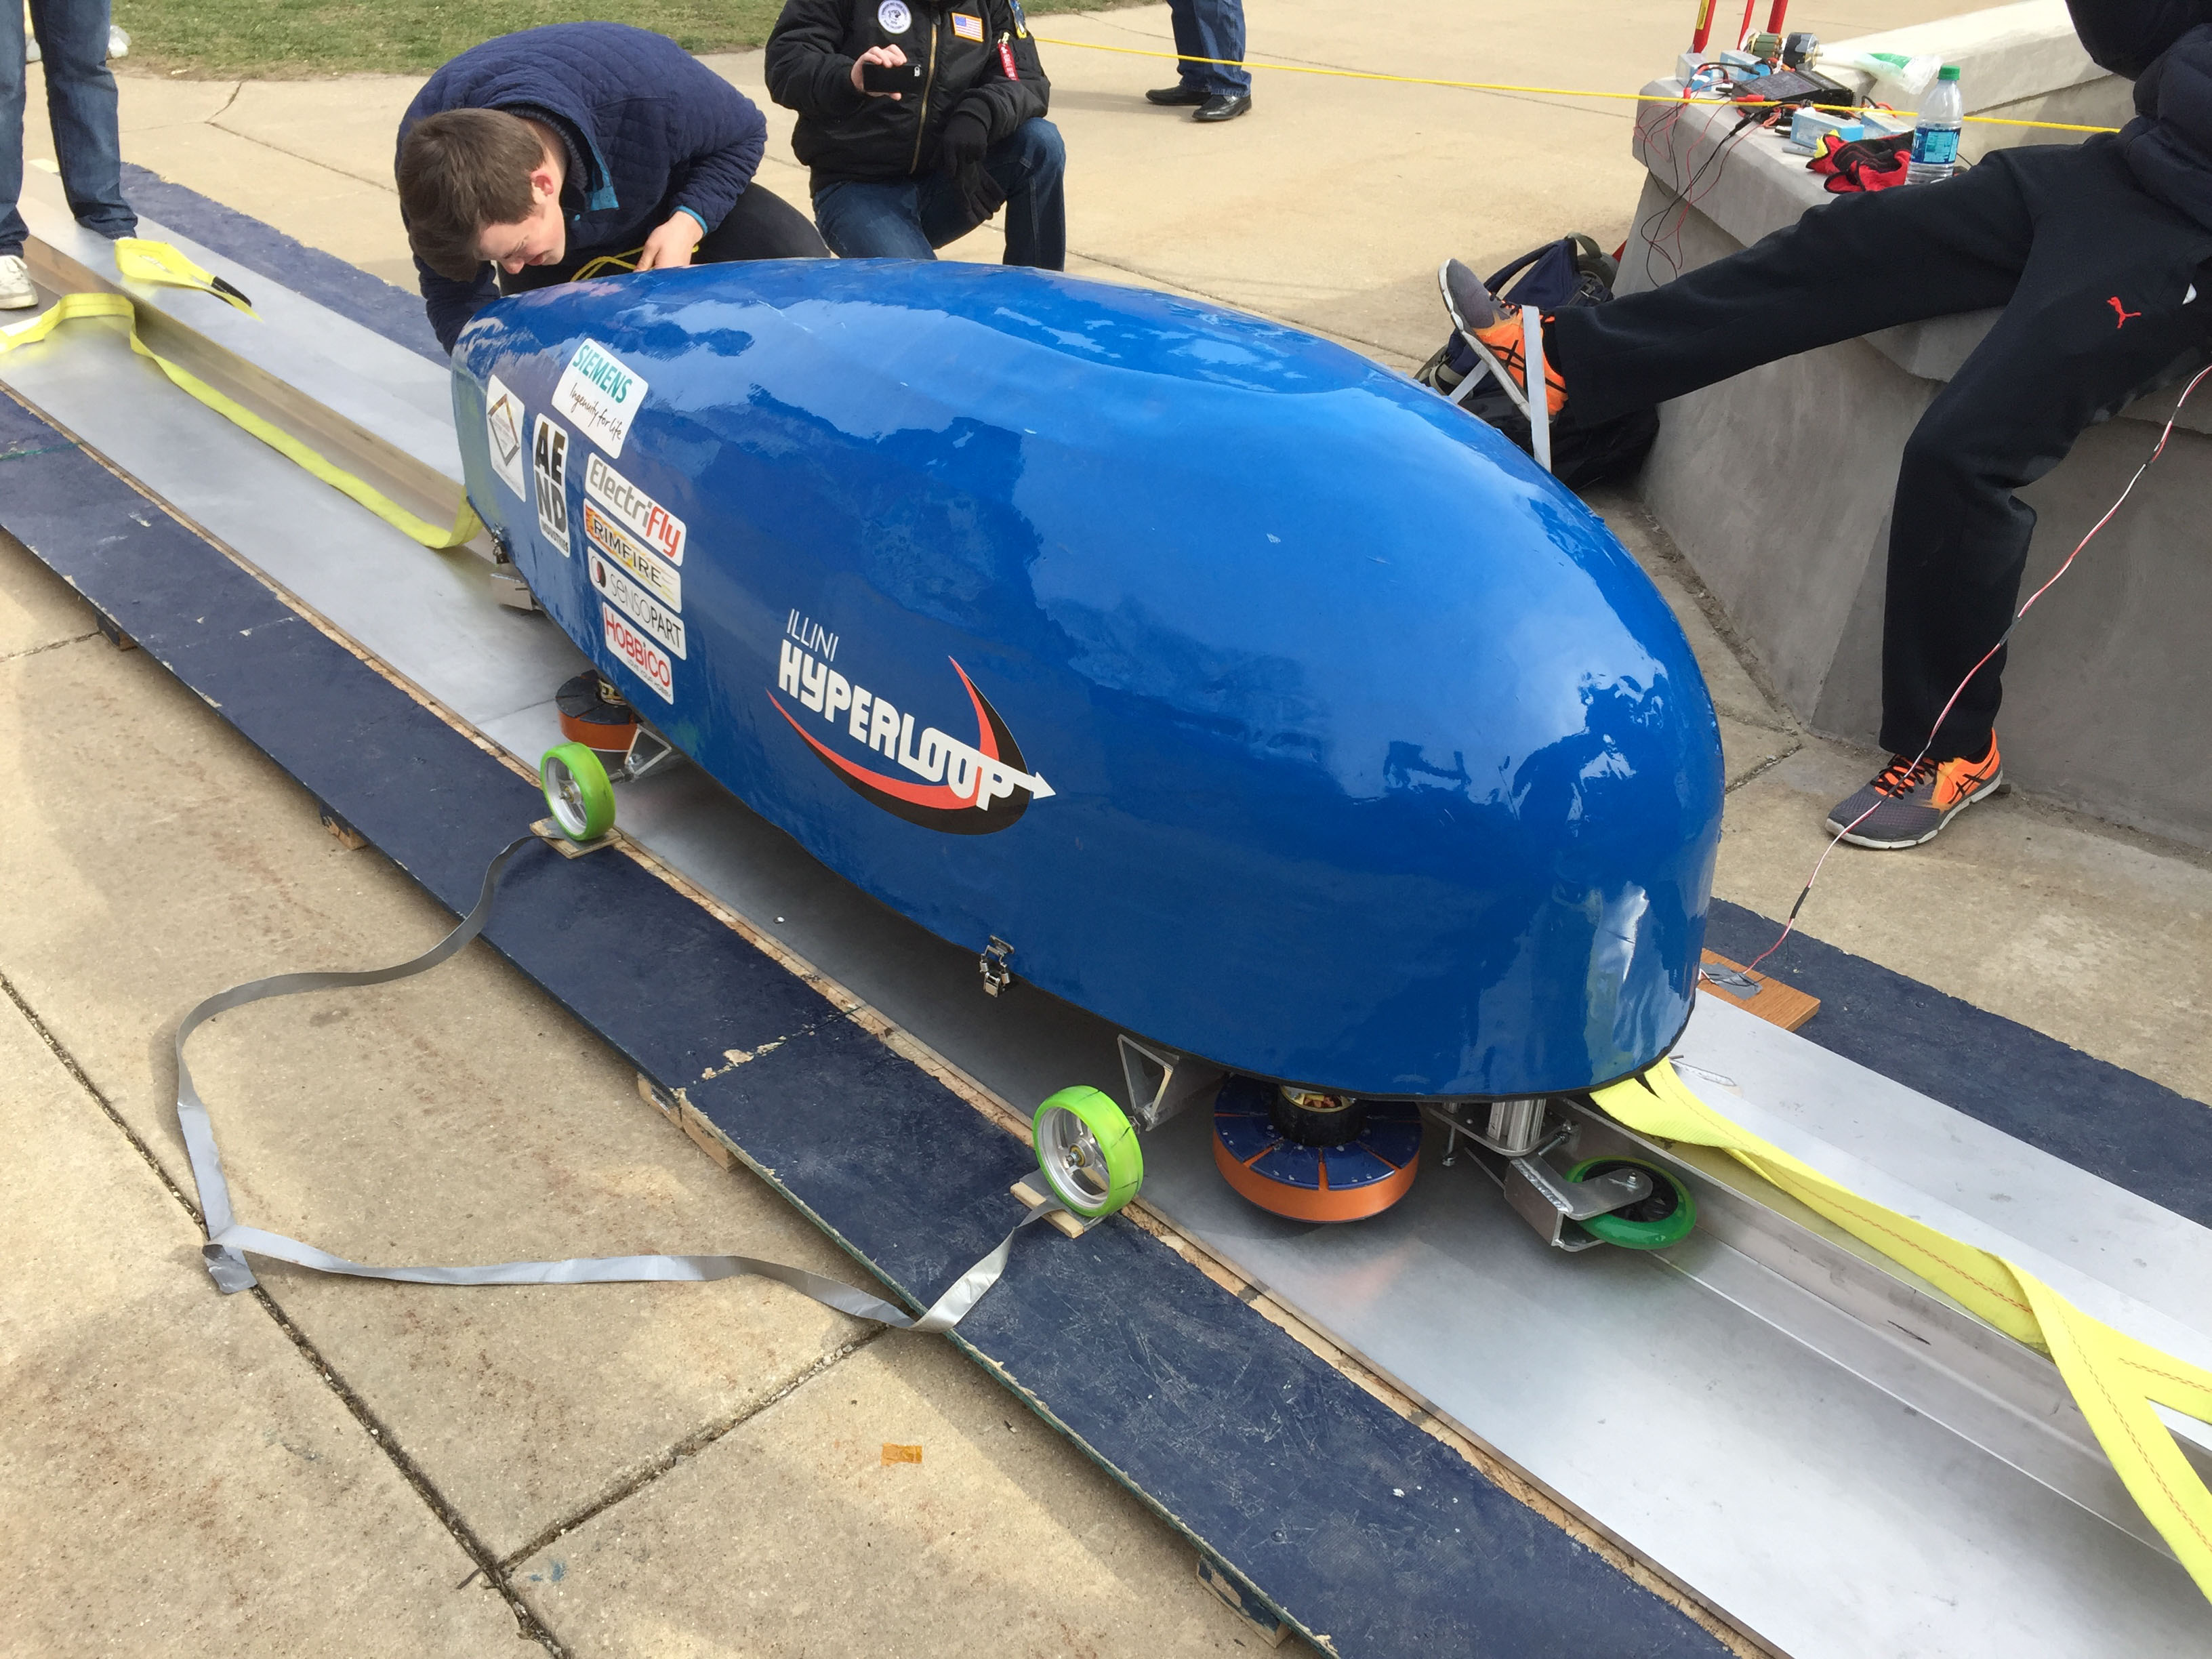 Illini Hyperloop members with the original pod they created for SpaceX's hyperloop competition. The team will be competing in the next SpaceX hyperloop competition later this year.